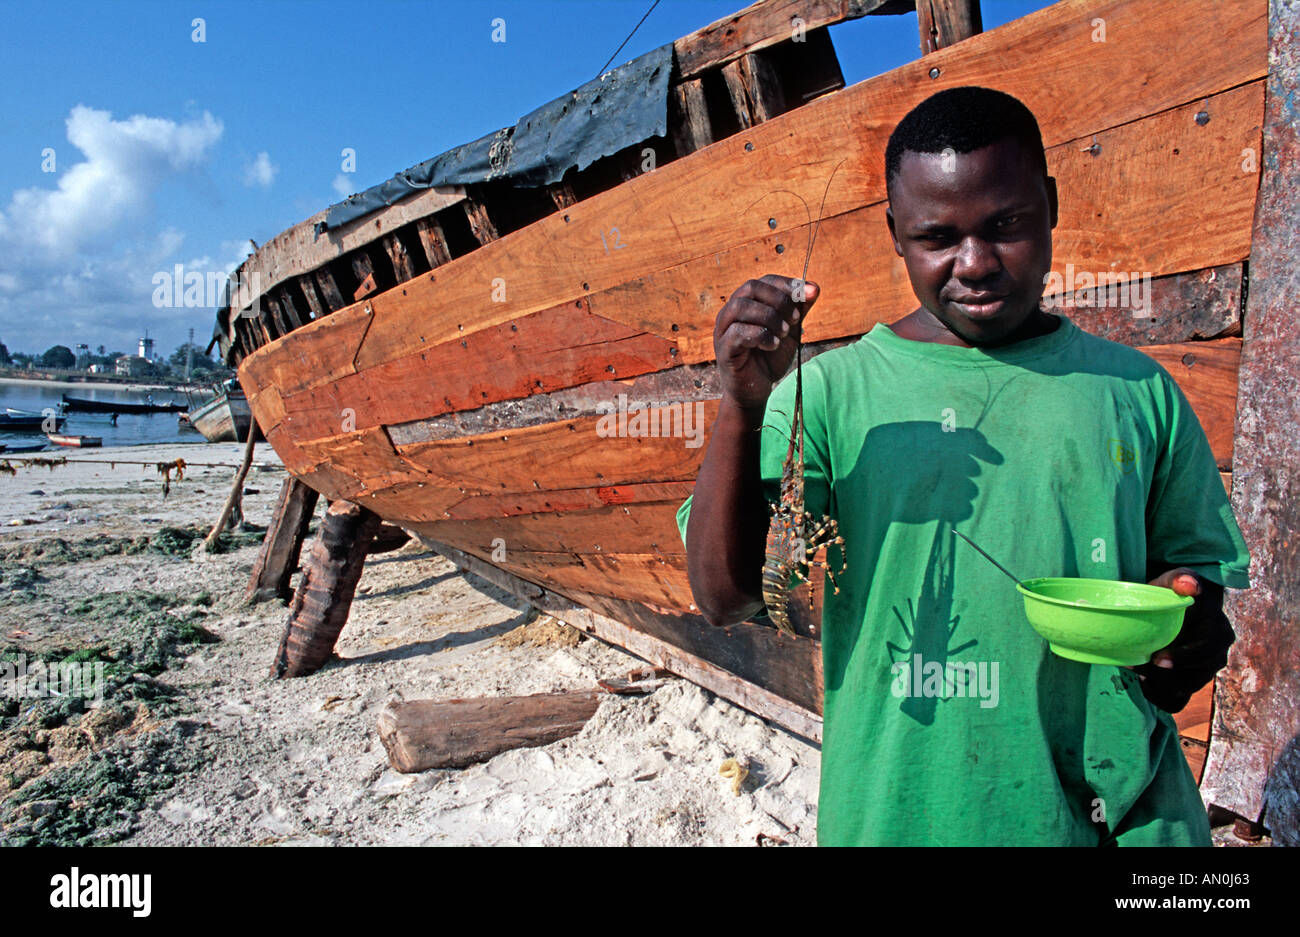 Tanzanian fisherman holding a large crayfish or lobster in his hands Beside dhow at the fish market in Dar es Salaam Tanzania - Stock Image